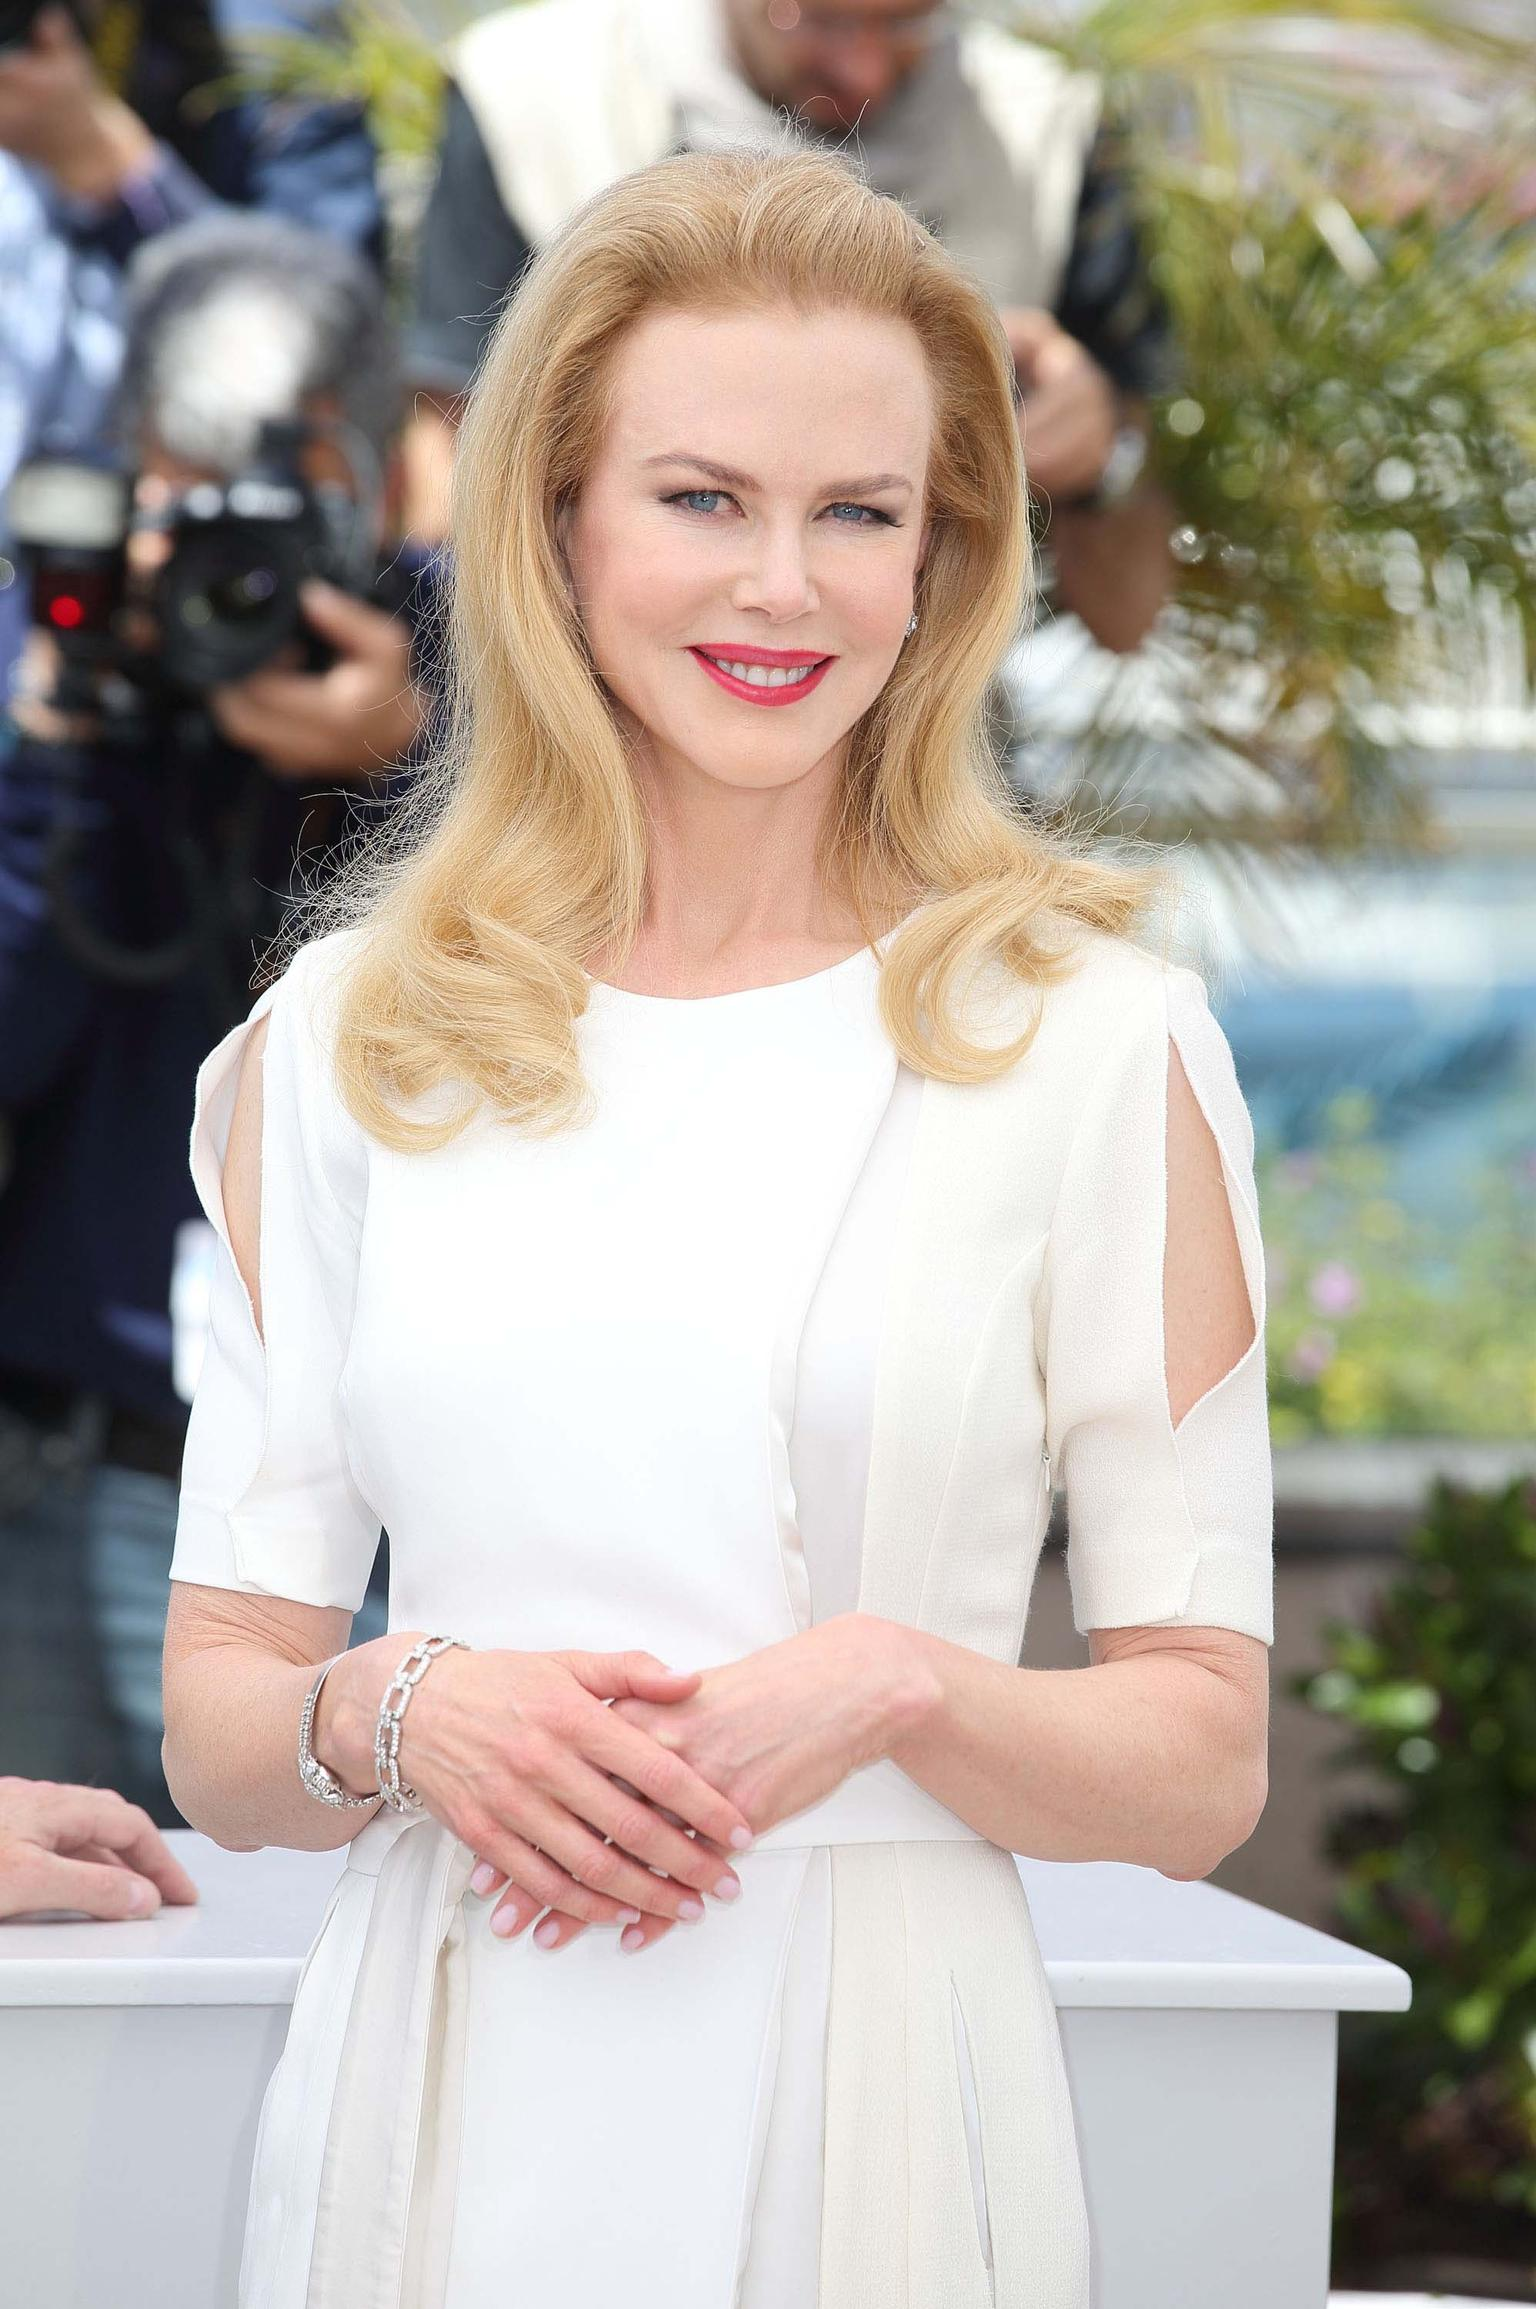 Earlier in the day, at the 'Grace of Monaco' photo call, Nicole Kidman paired her demure white dress with peek-a-boo sleeves with a Harry Winston Diamond Links bracelet and diamond earrings